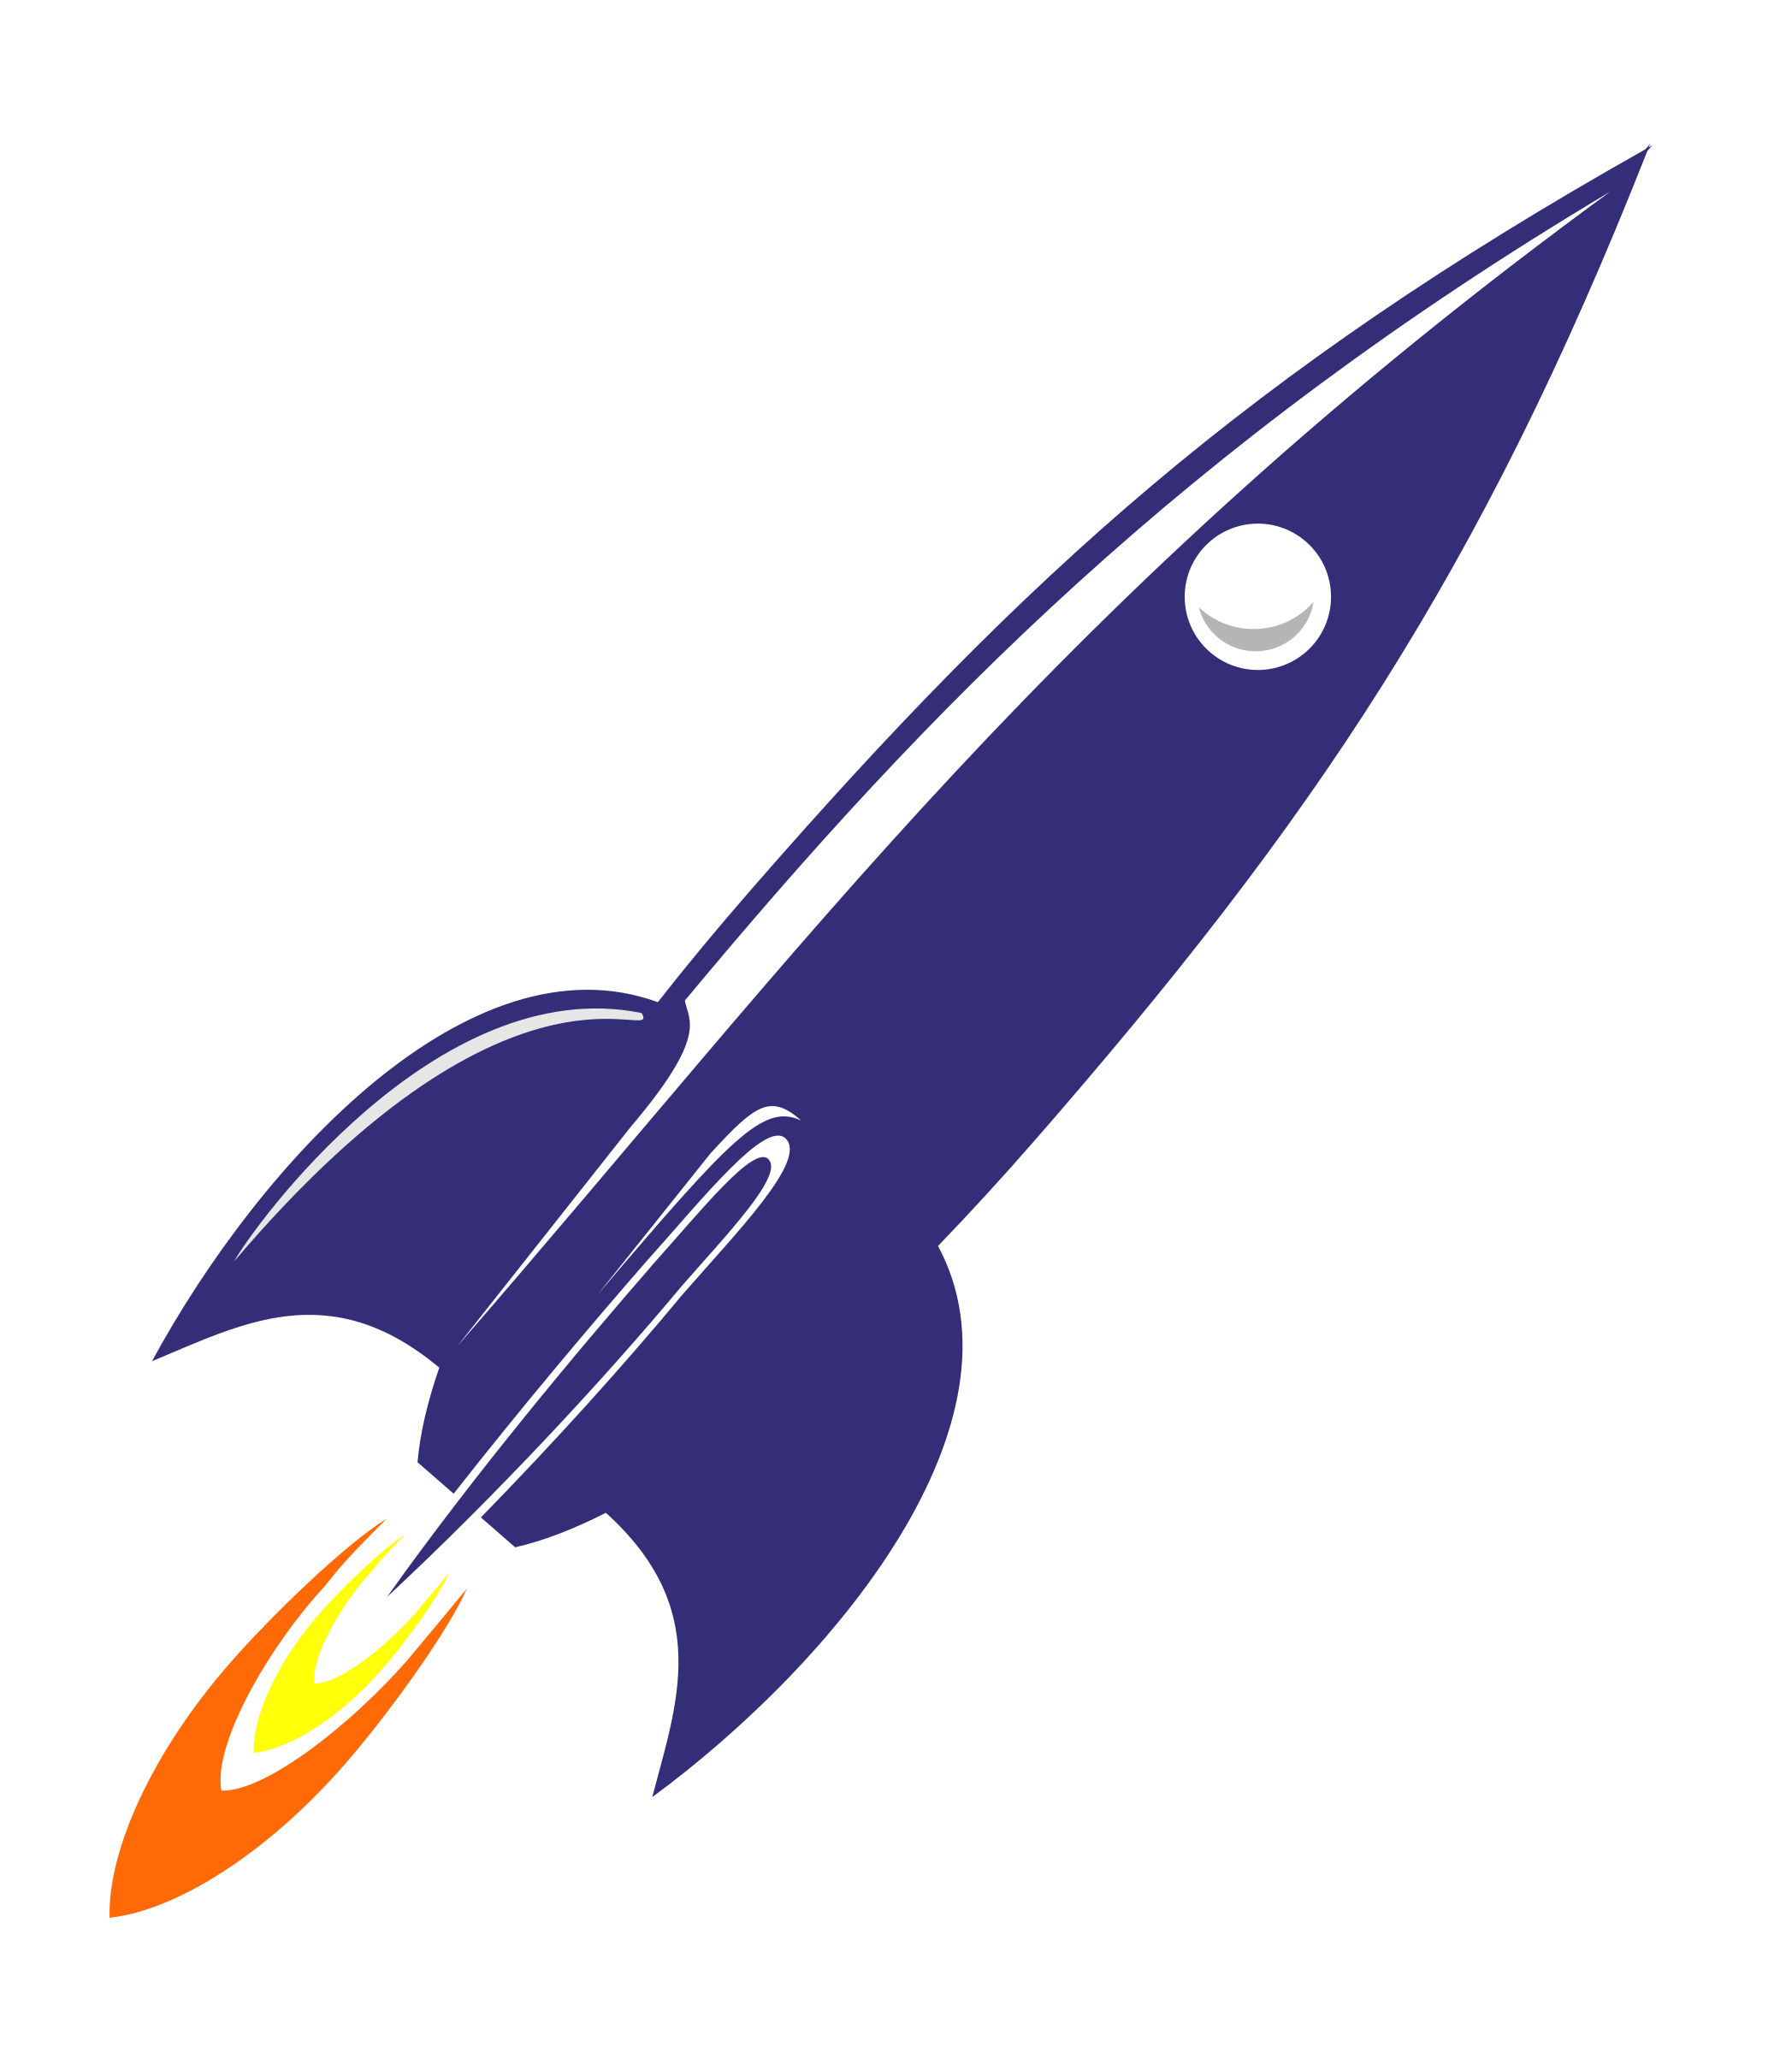 Png hd mart. Clipart rocket transparent background